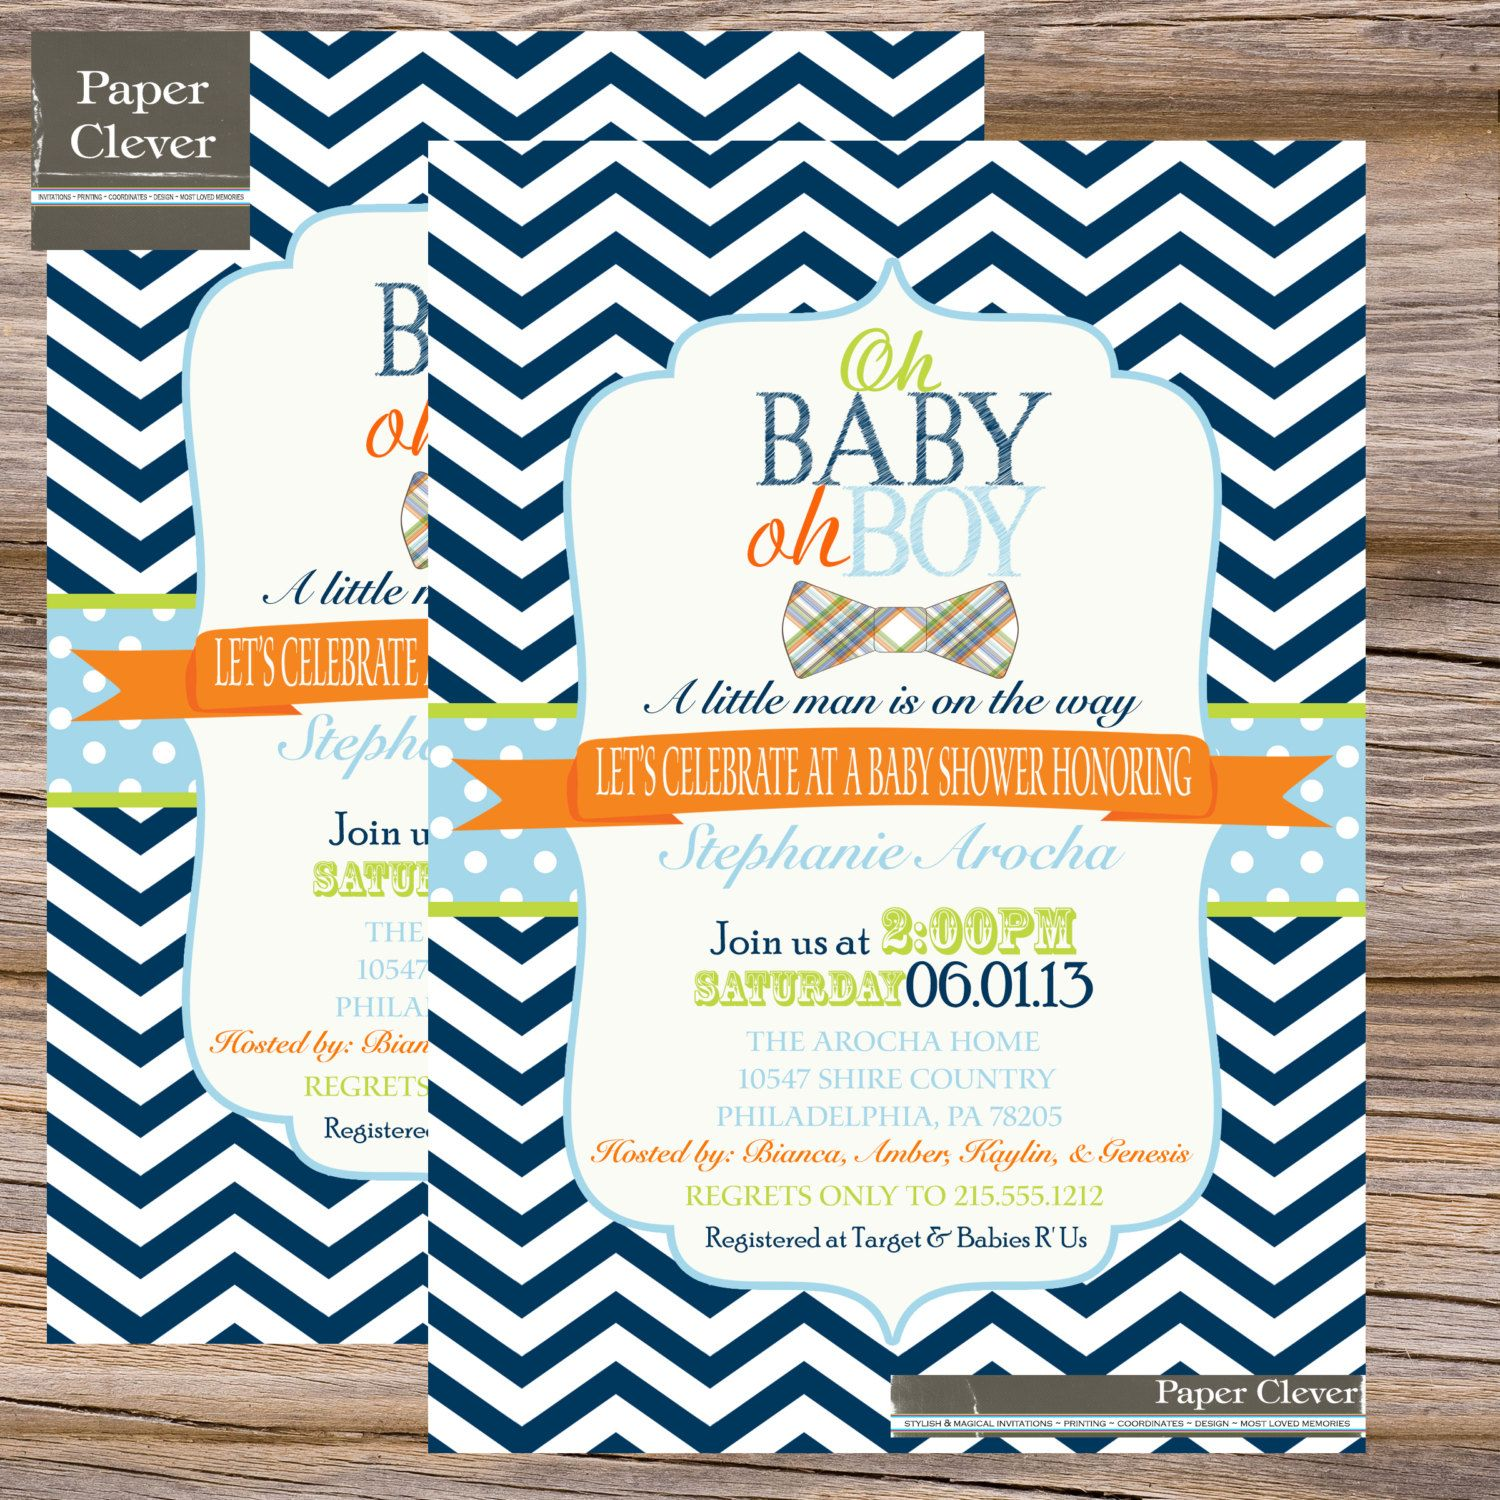 Bowtie Boys baby shower invitation oh boy navy lime by paperclever ...